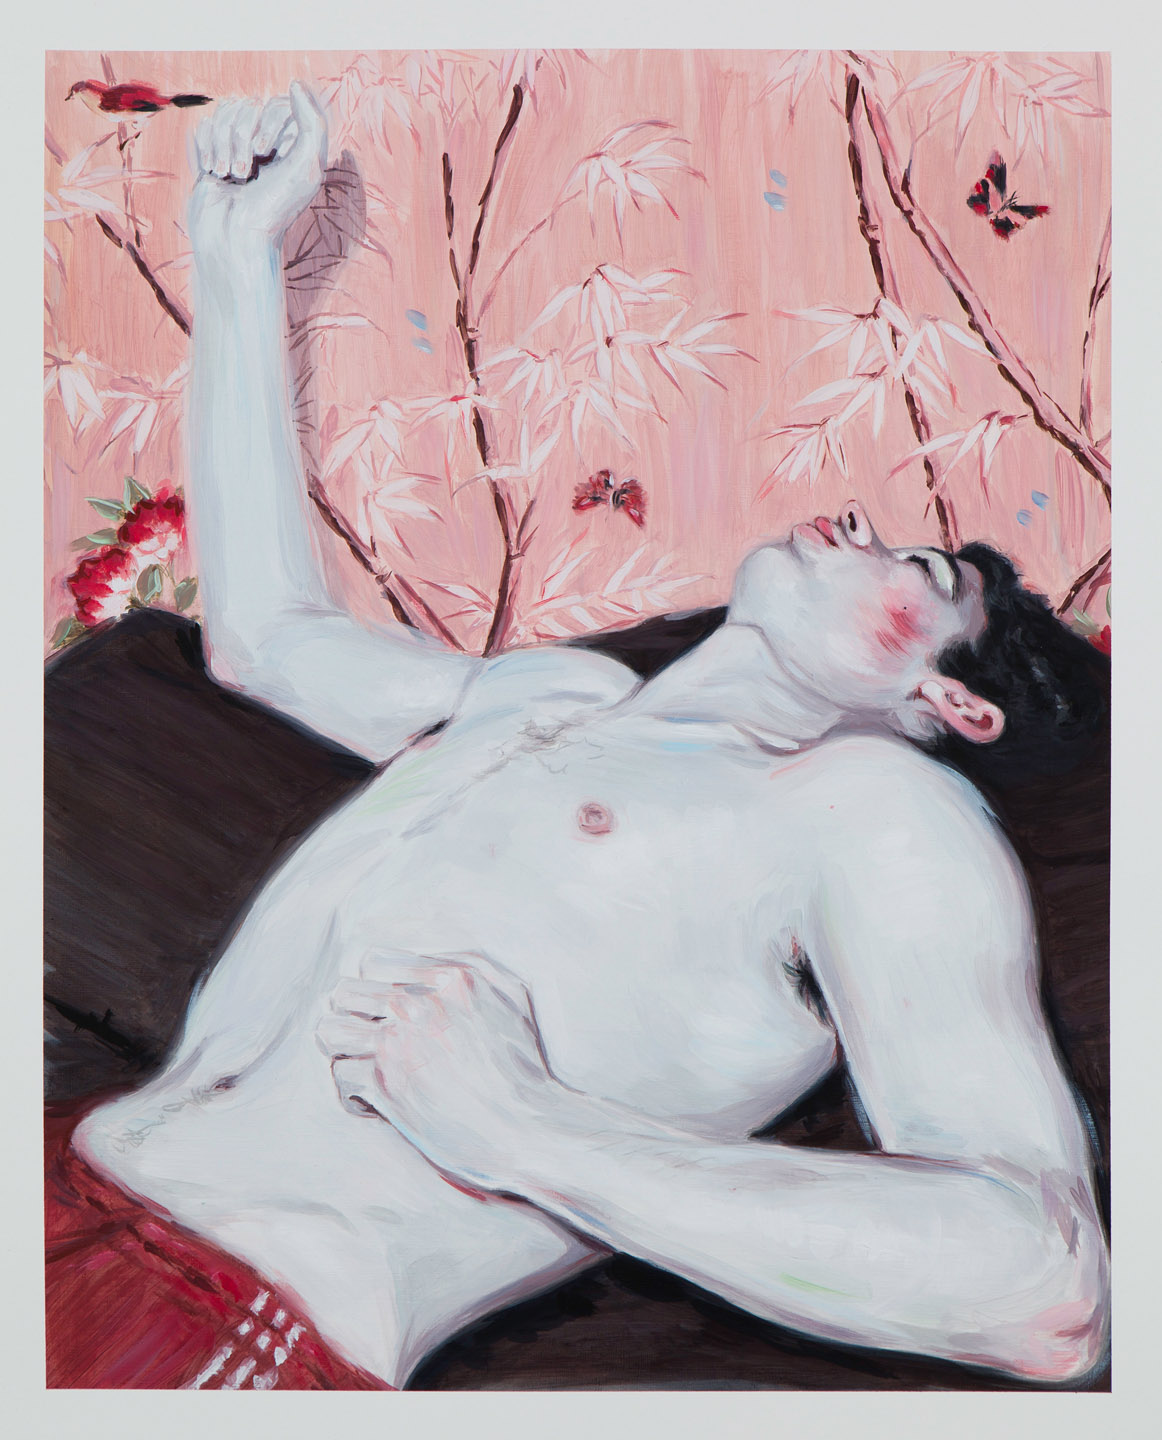 Kris Knight, Lounge Act, 2015, oil on prepared cotton paper, 20 x 16 inches.